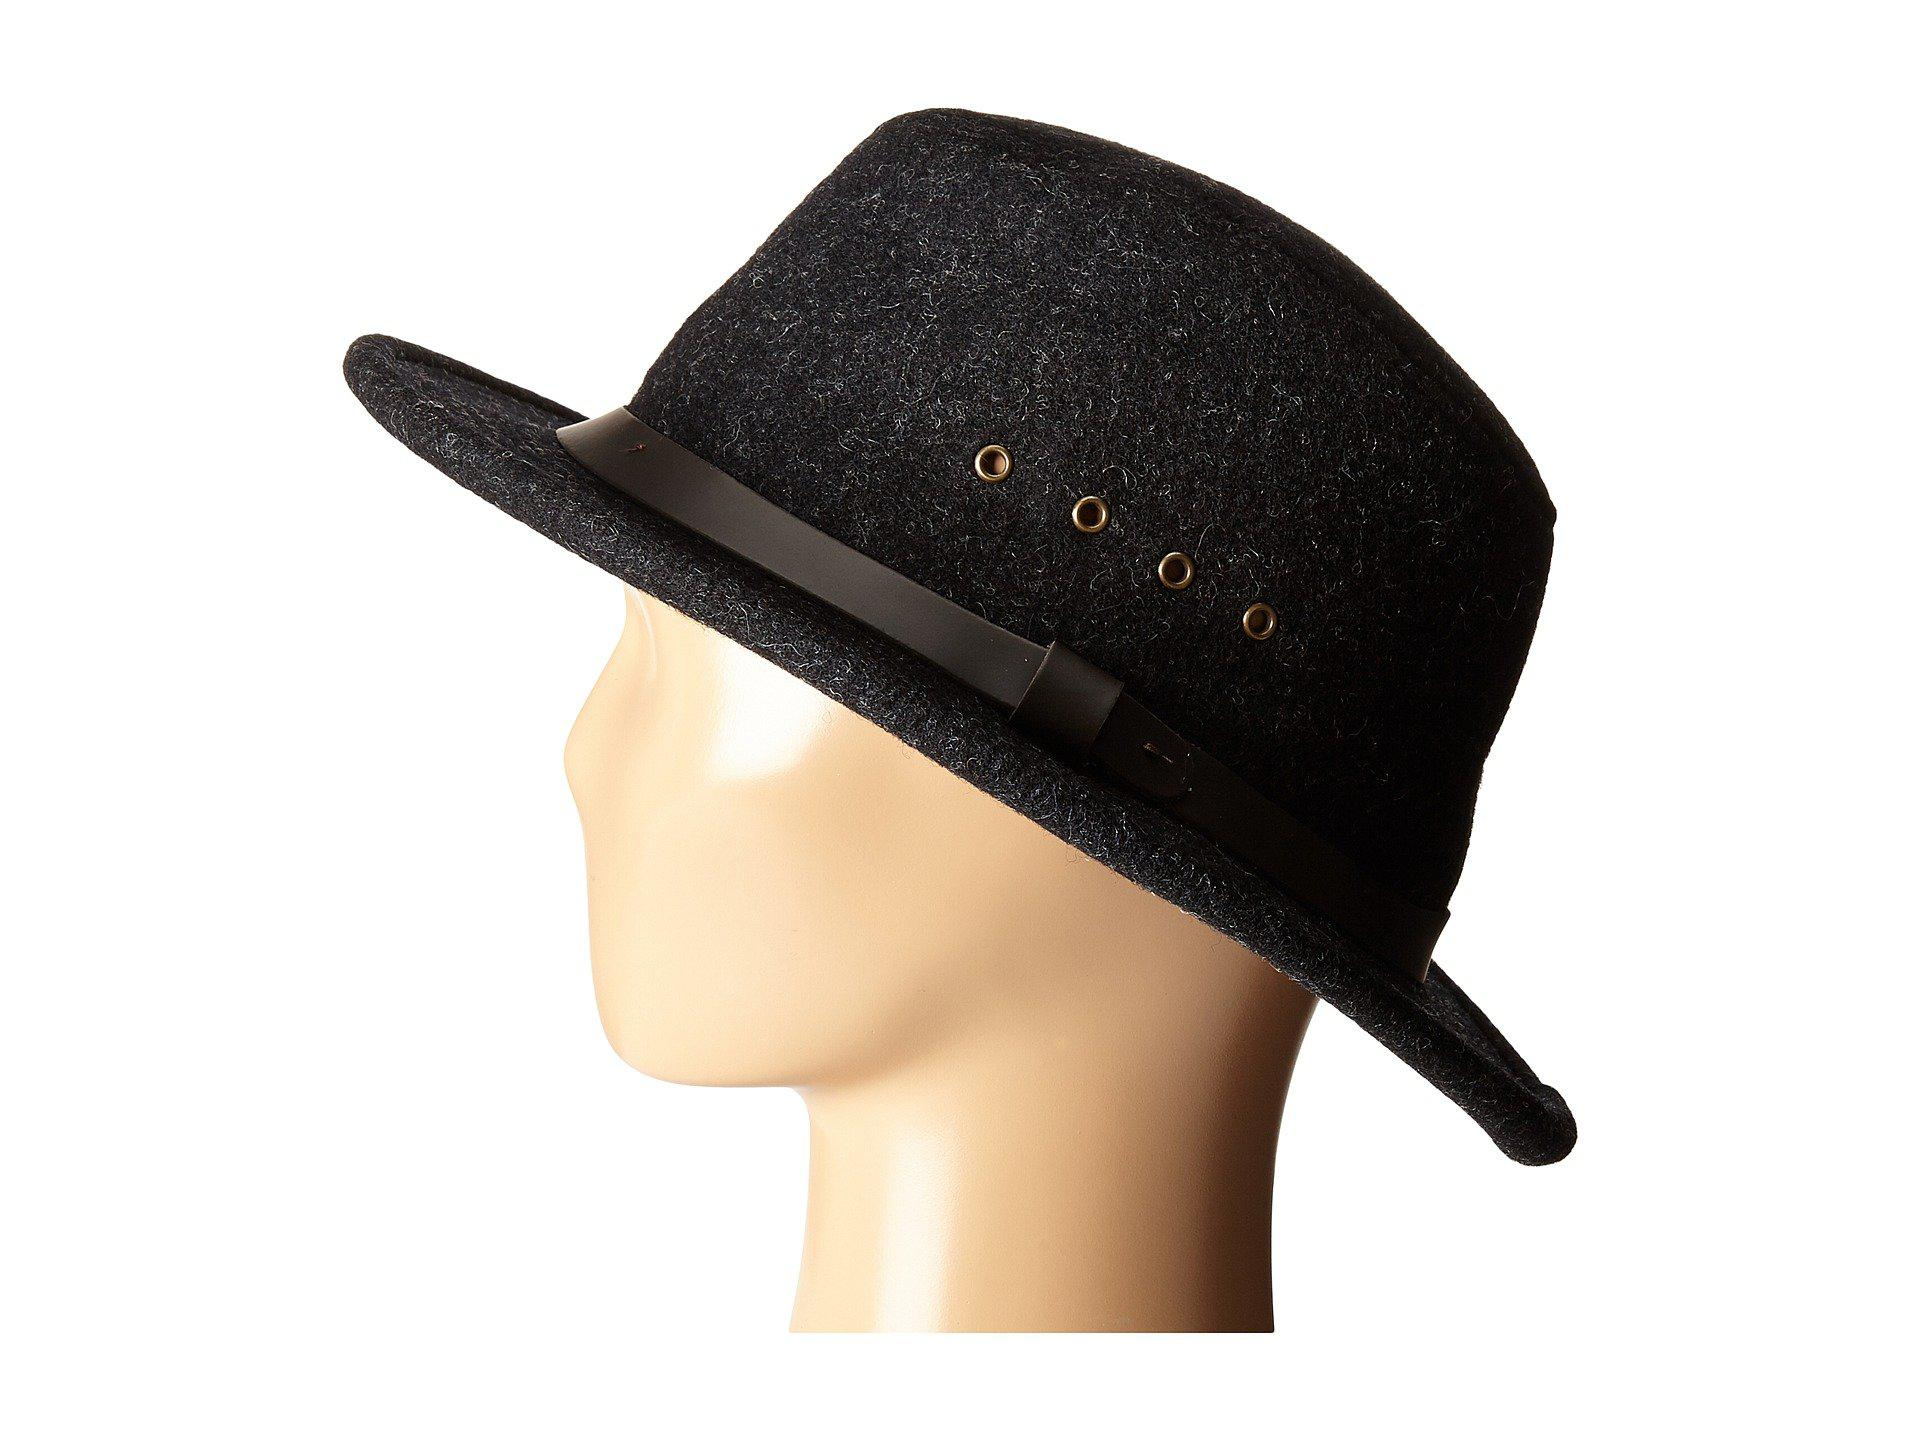 Lyst - Filson Wool Packer Hat in Black 6ff33d783